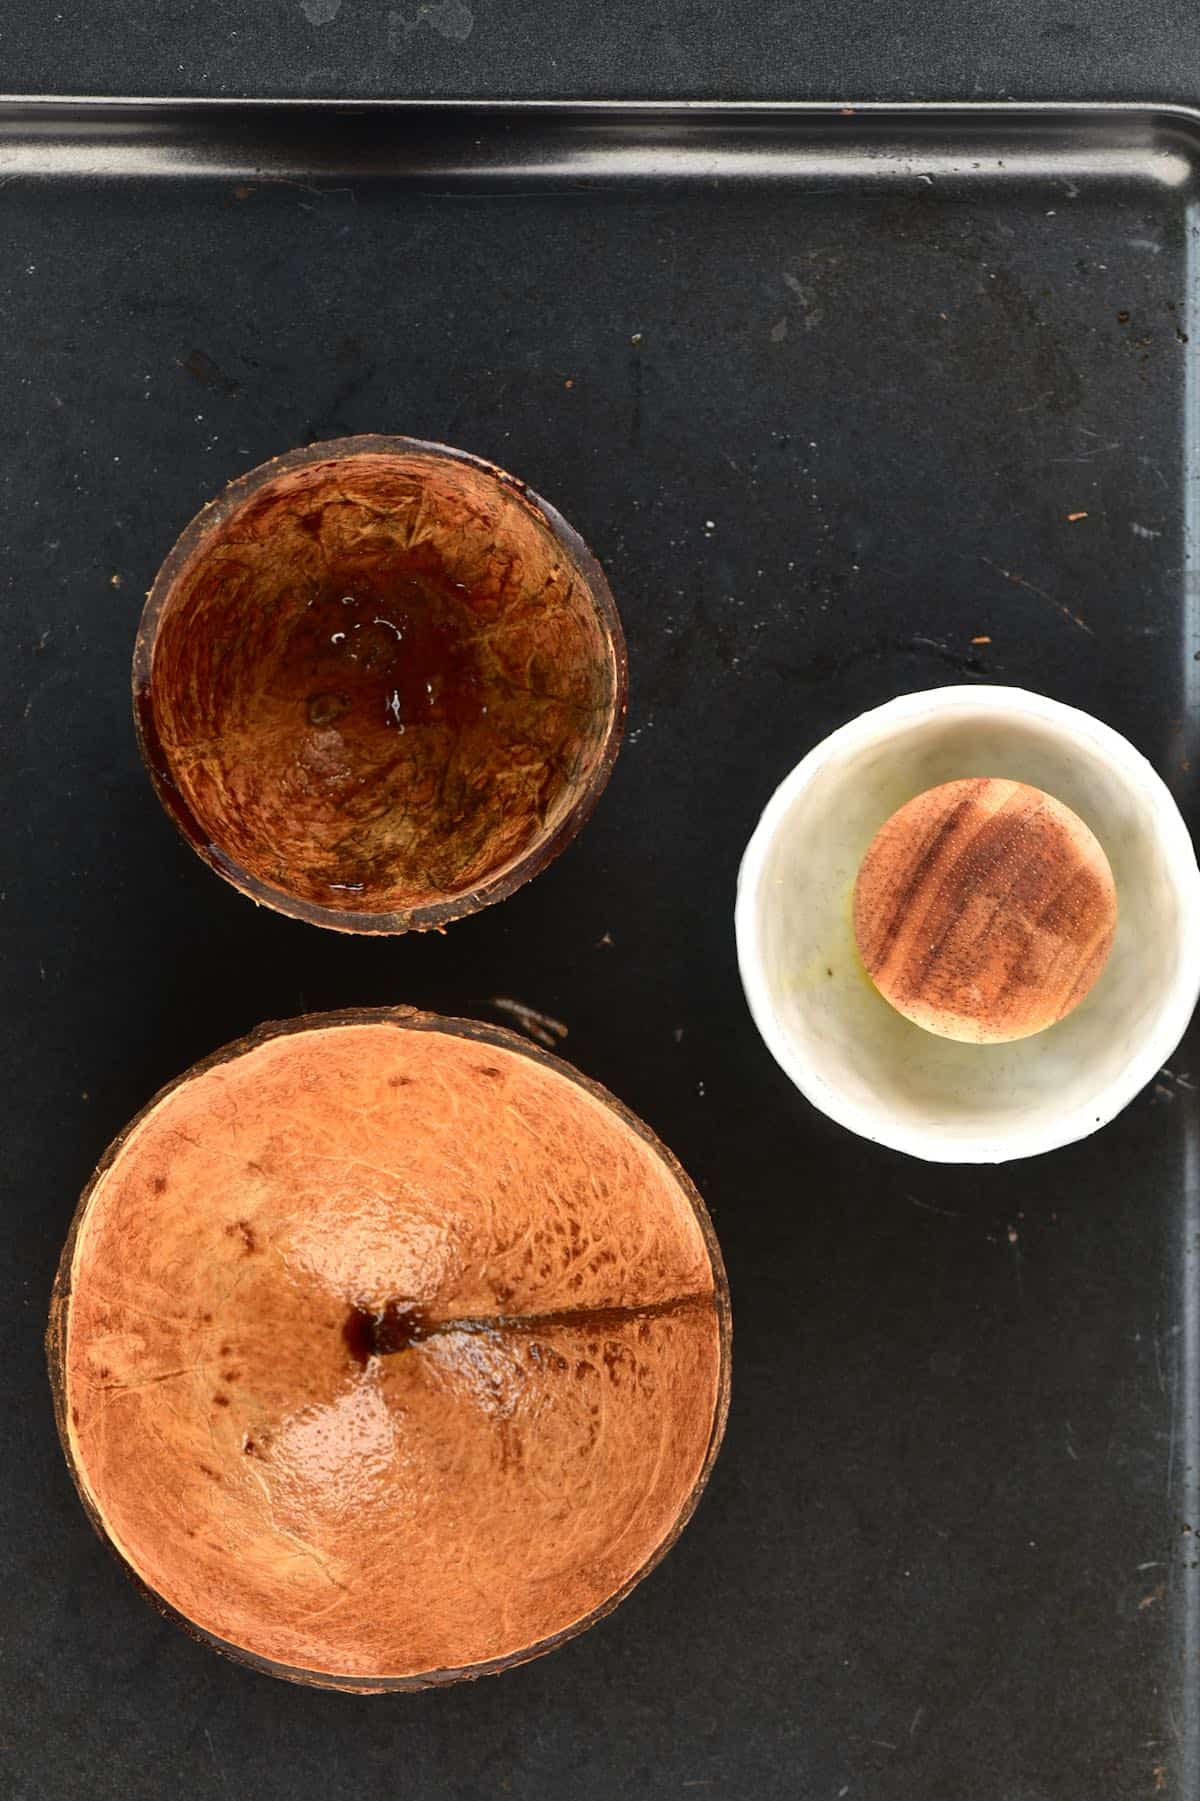 Two coconut shell bowls on a baking tray with a little bowl with oil and brush